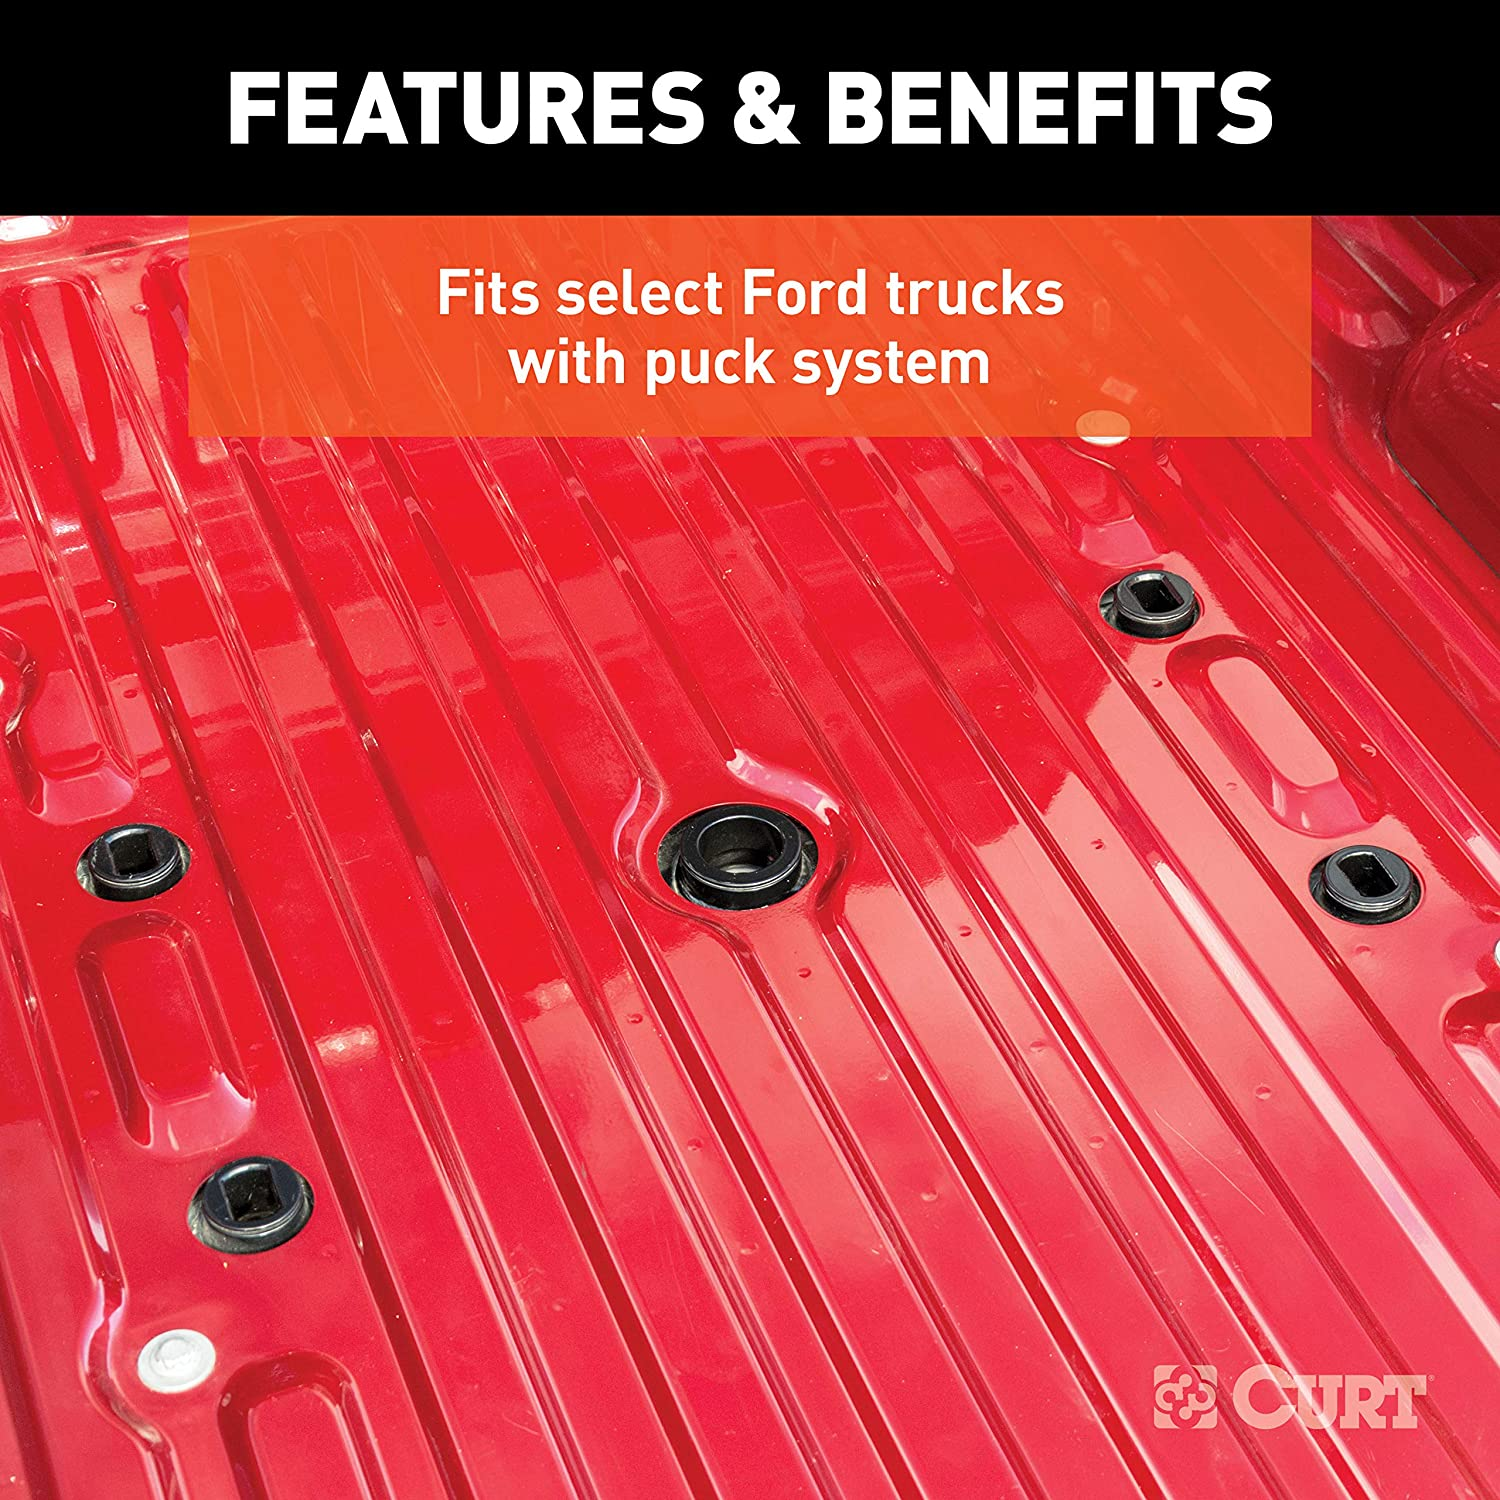 CURT 16674 E16 5th Wheel Slider Hitch for Ford Puck System Short Bed Trucks 16,000 lbs